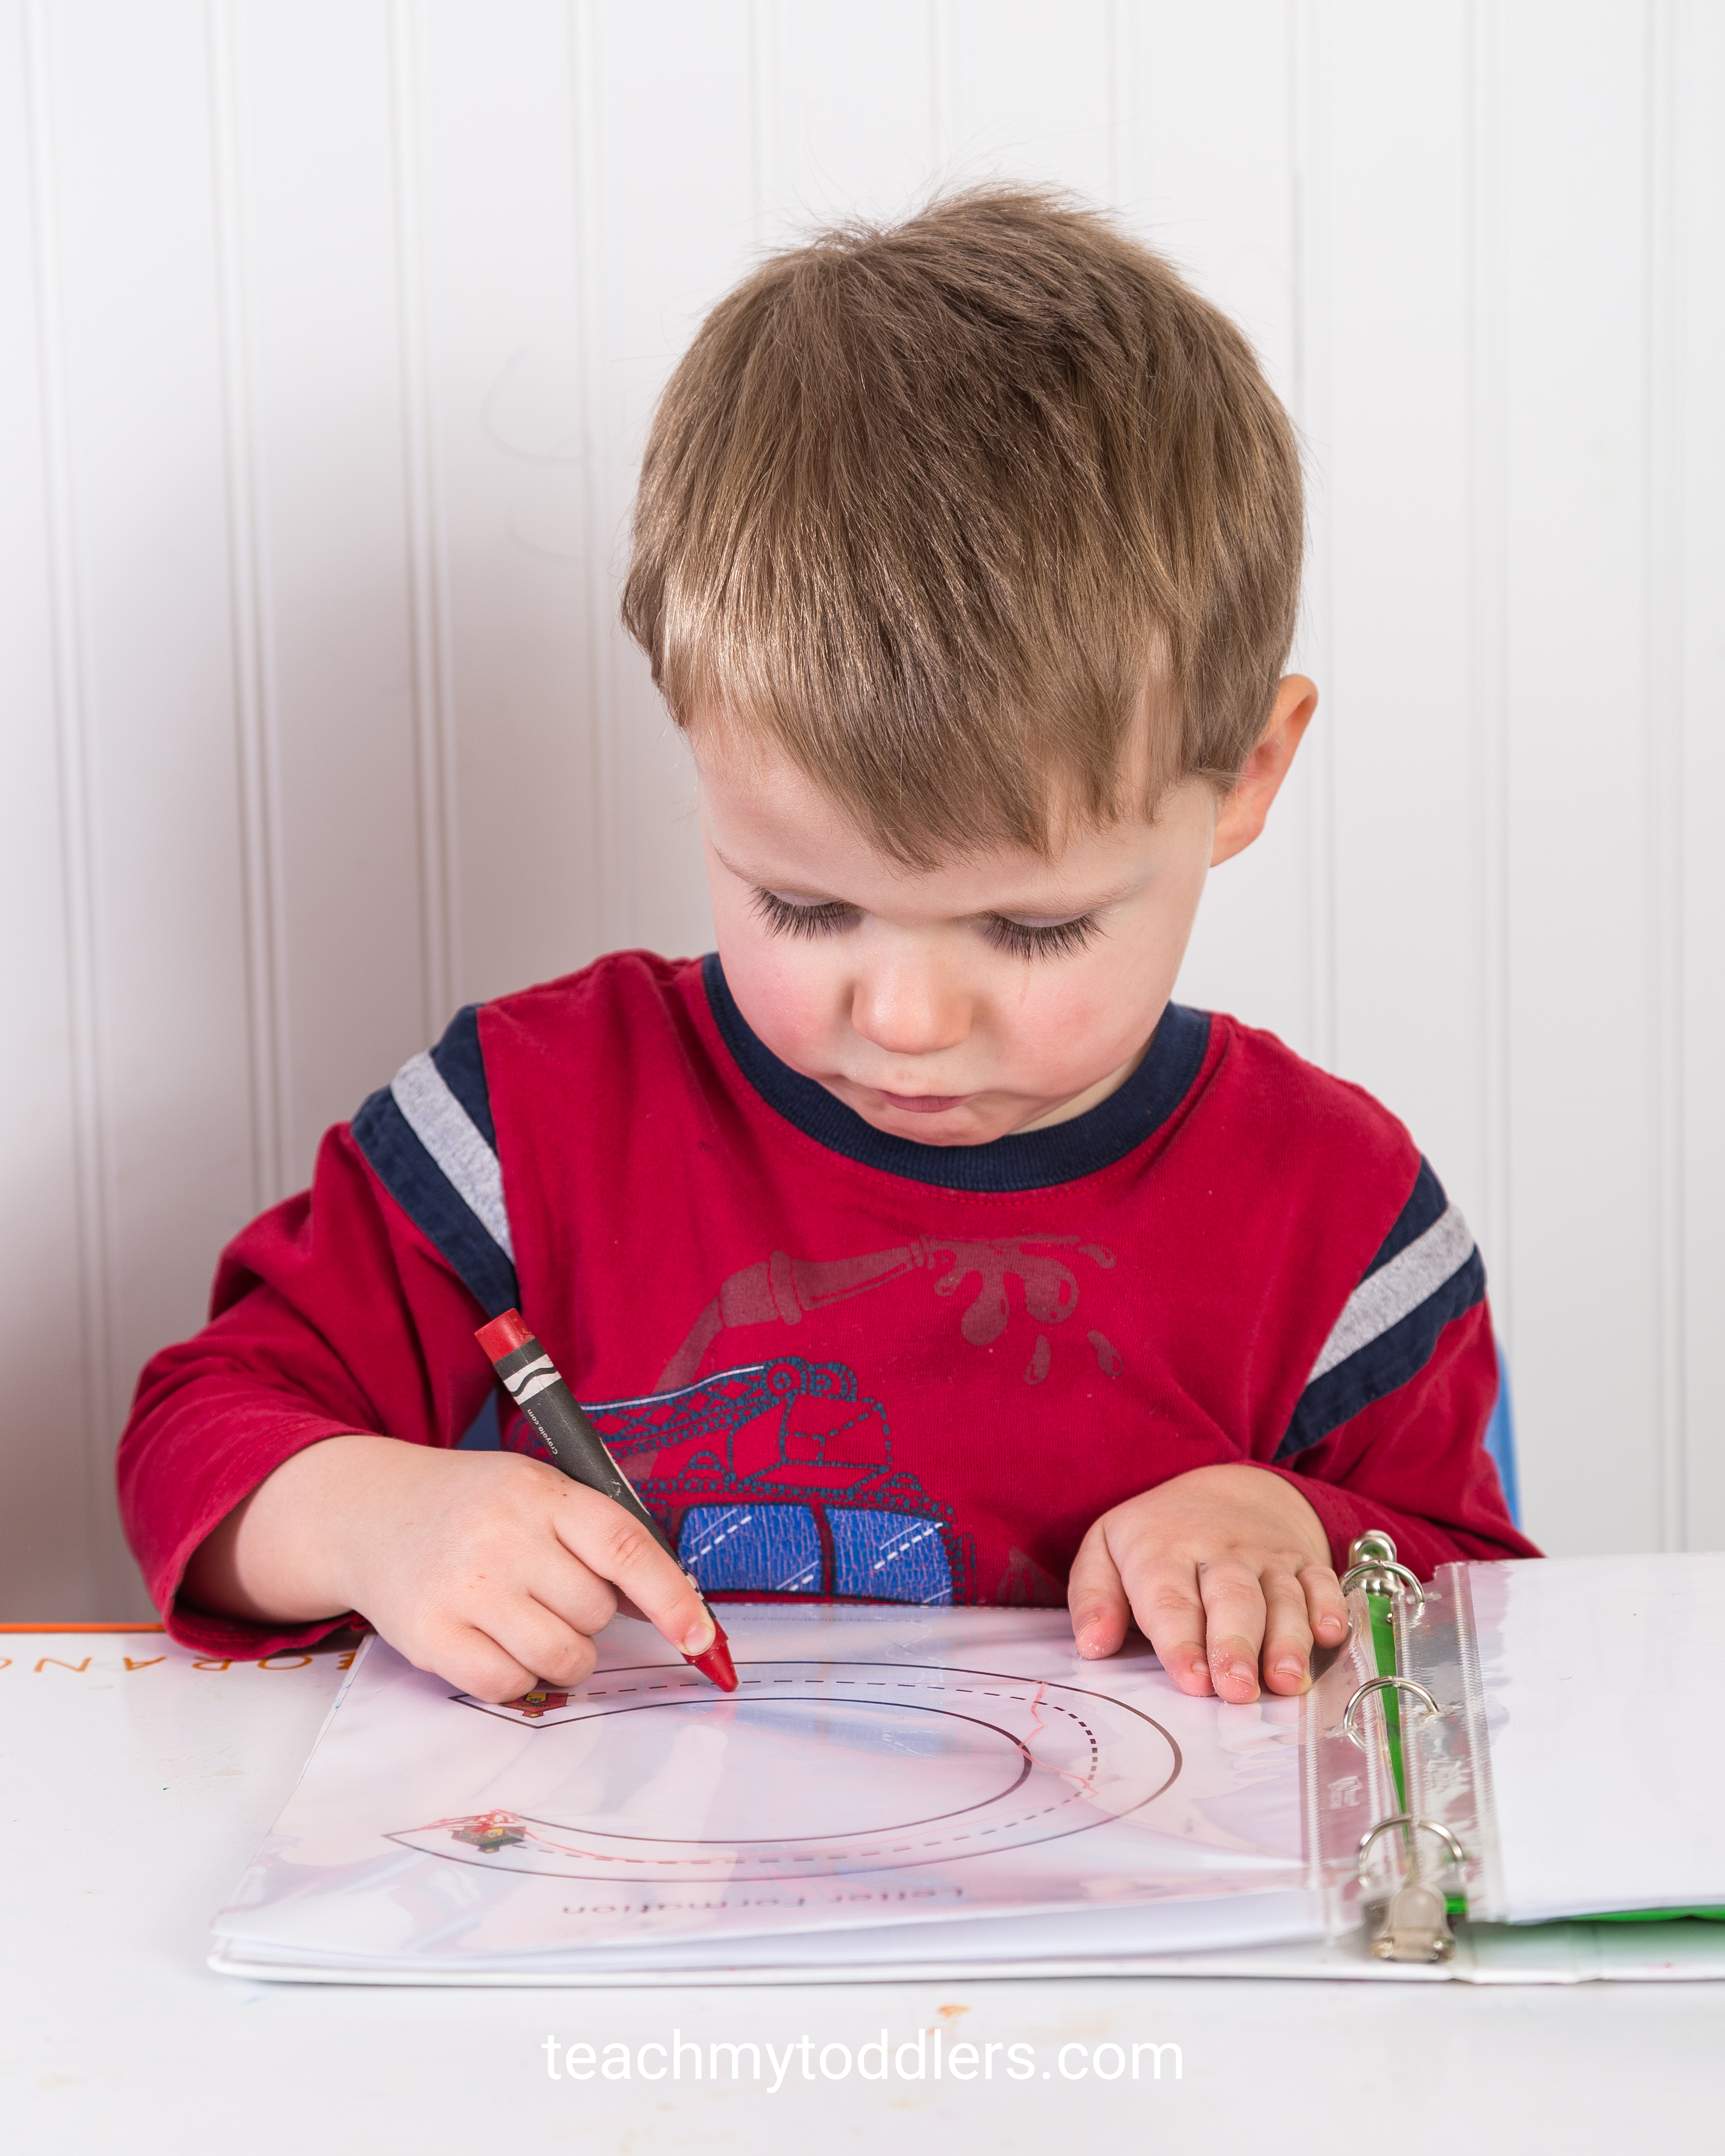 Use these fun activities to teach toddlers the letter c is for community helpers